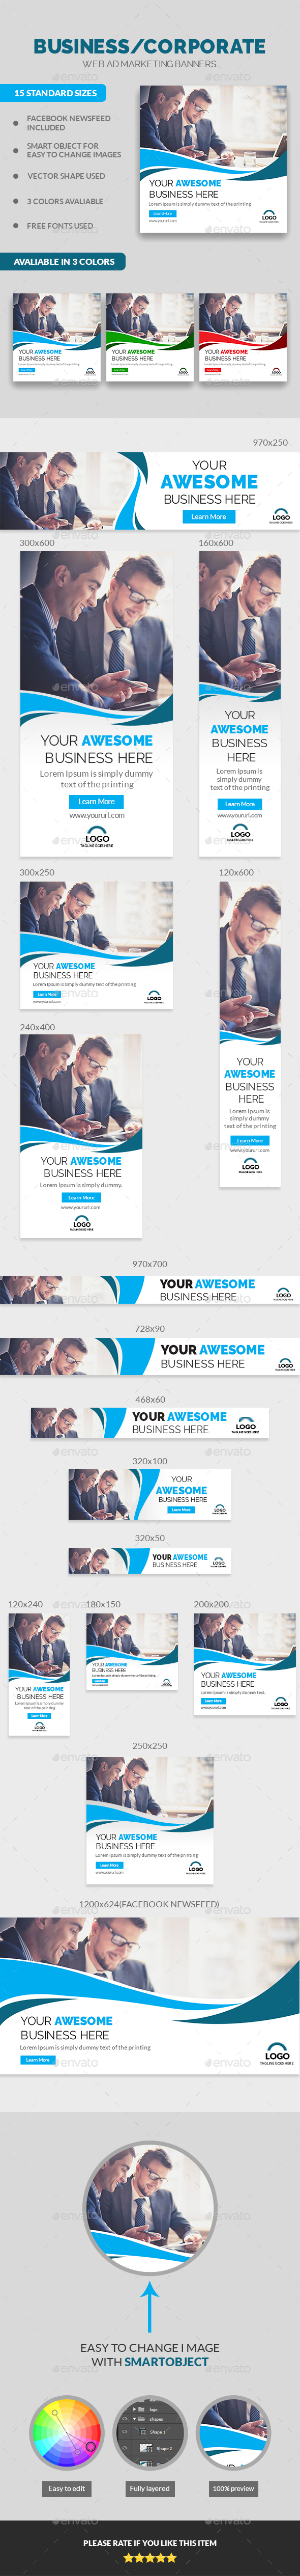 Multipurpose Corporate Business Banners - Banners & Ads Web Elements